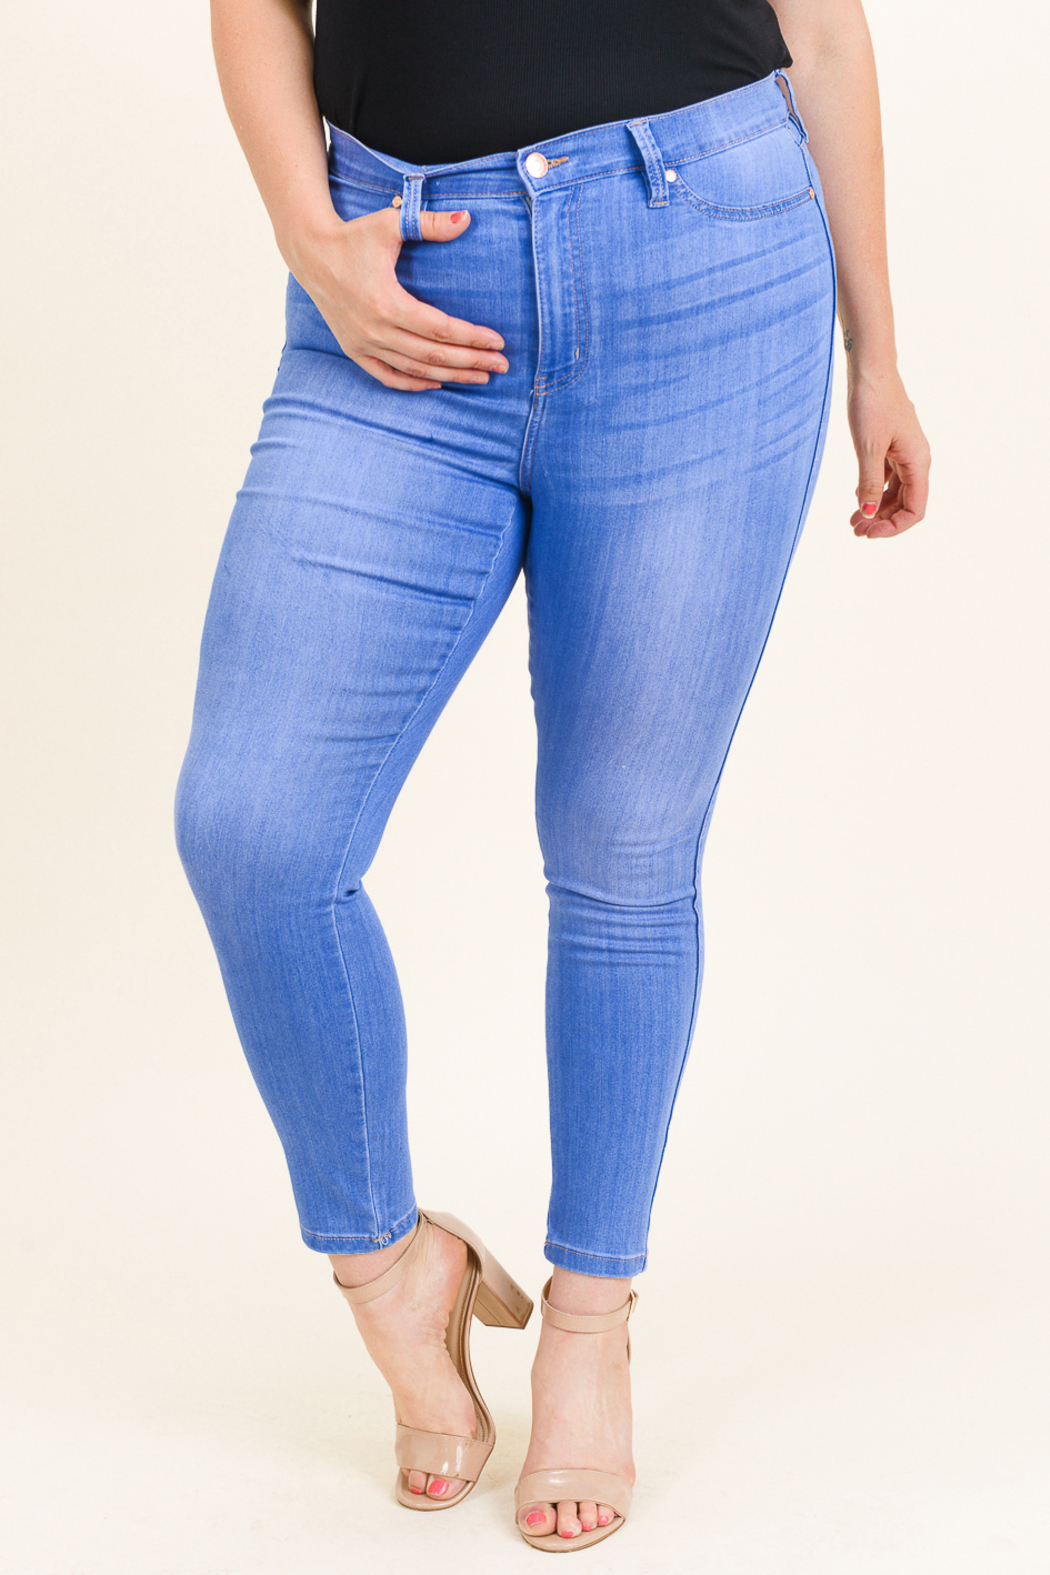 MONTREZ Plus size high rise skinny jeans - Side Cropped Image